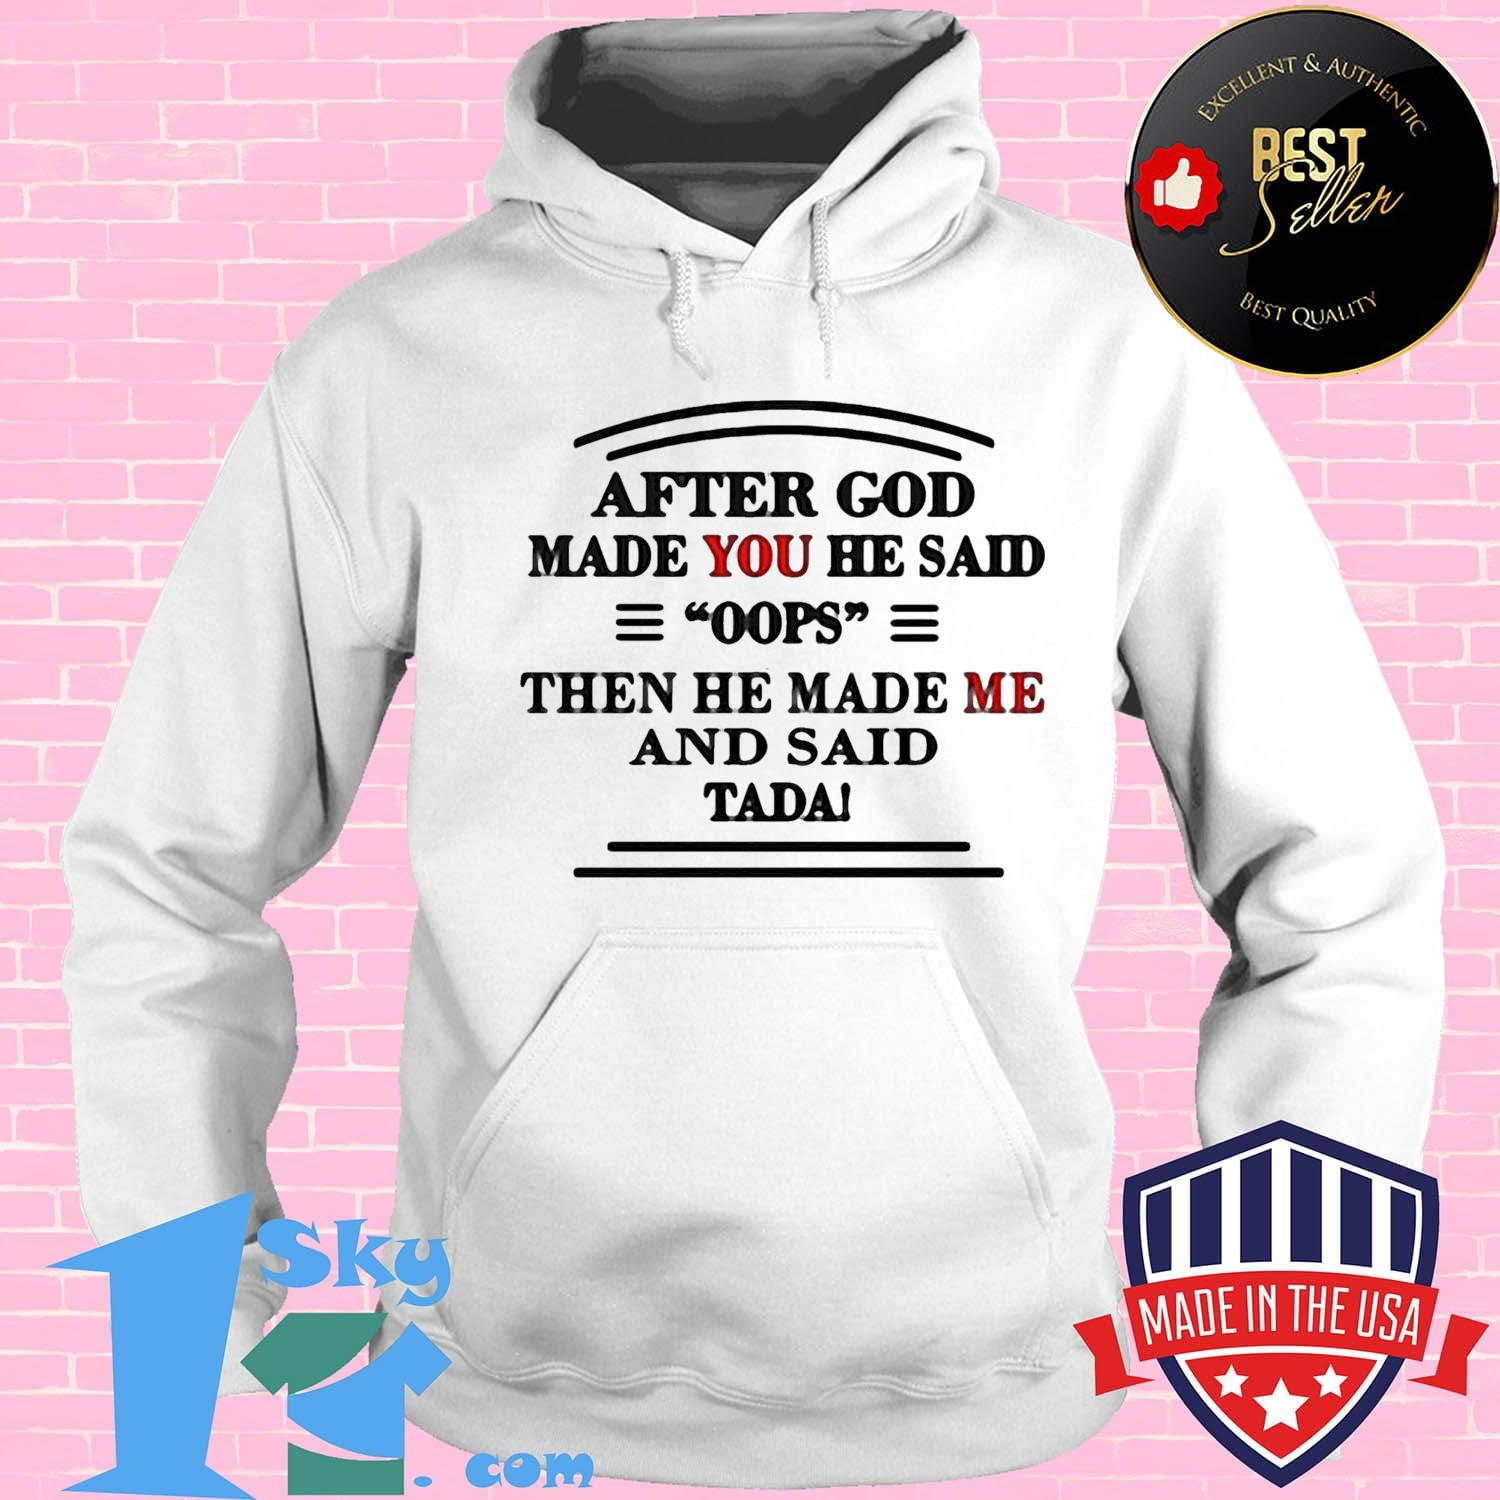 07850a29 after god made you he said oops then he made me and said tada shirt hoodie - Shop trending - We offer all trend shirts - 1SkyTee